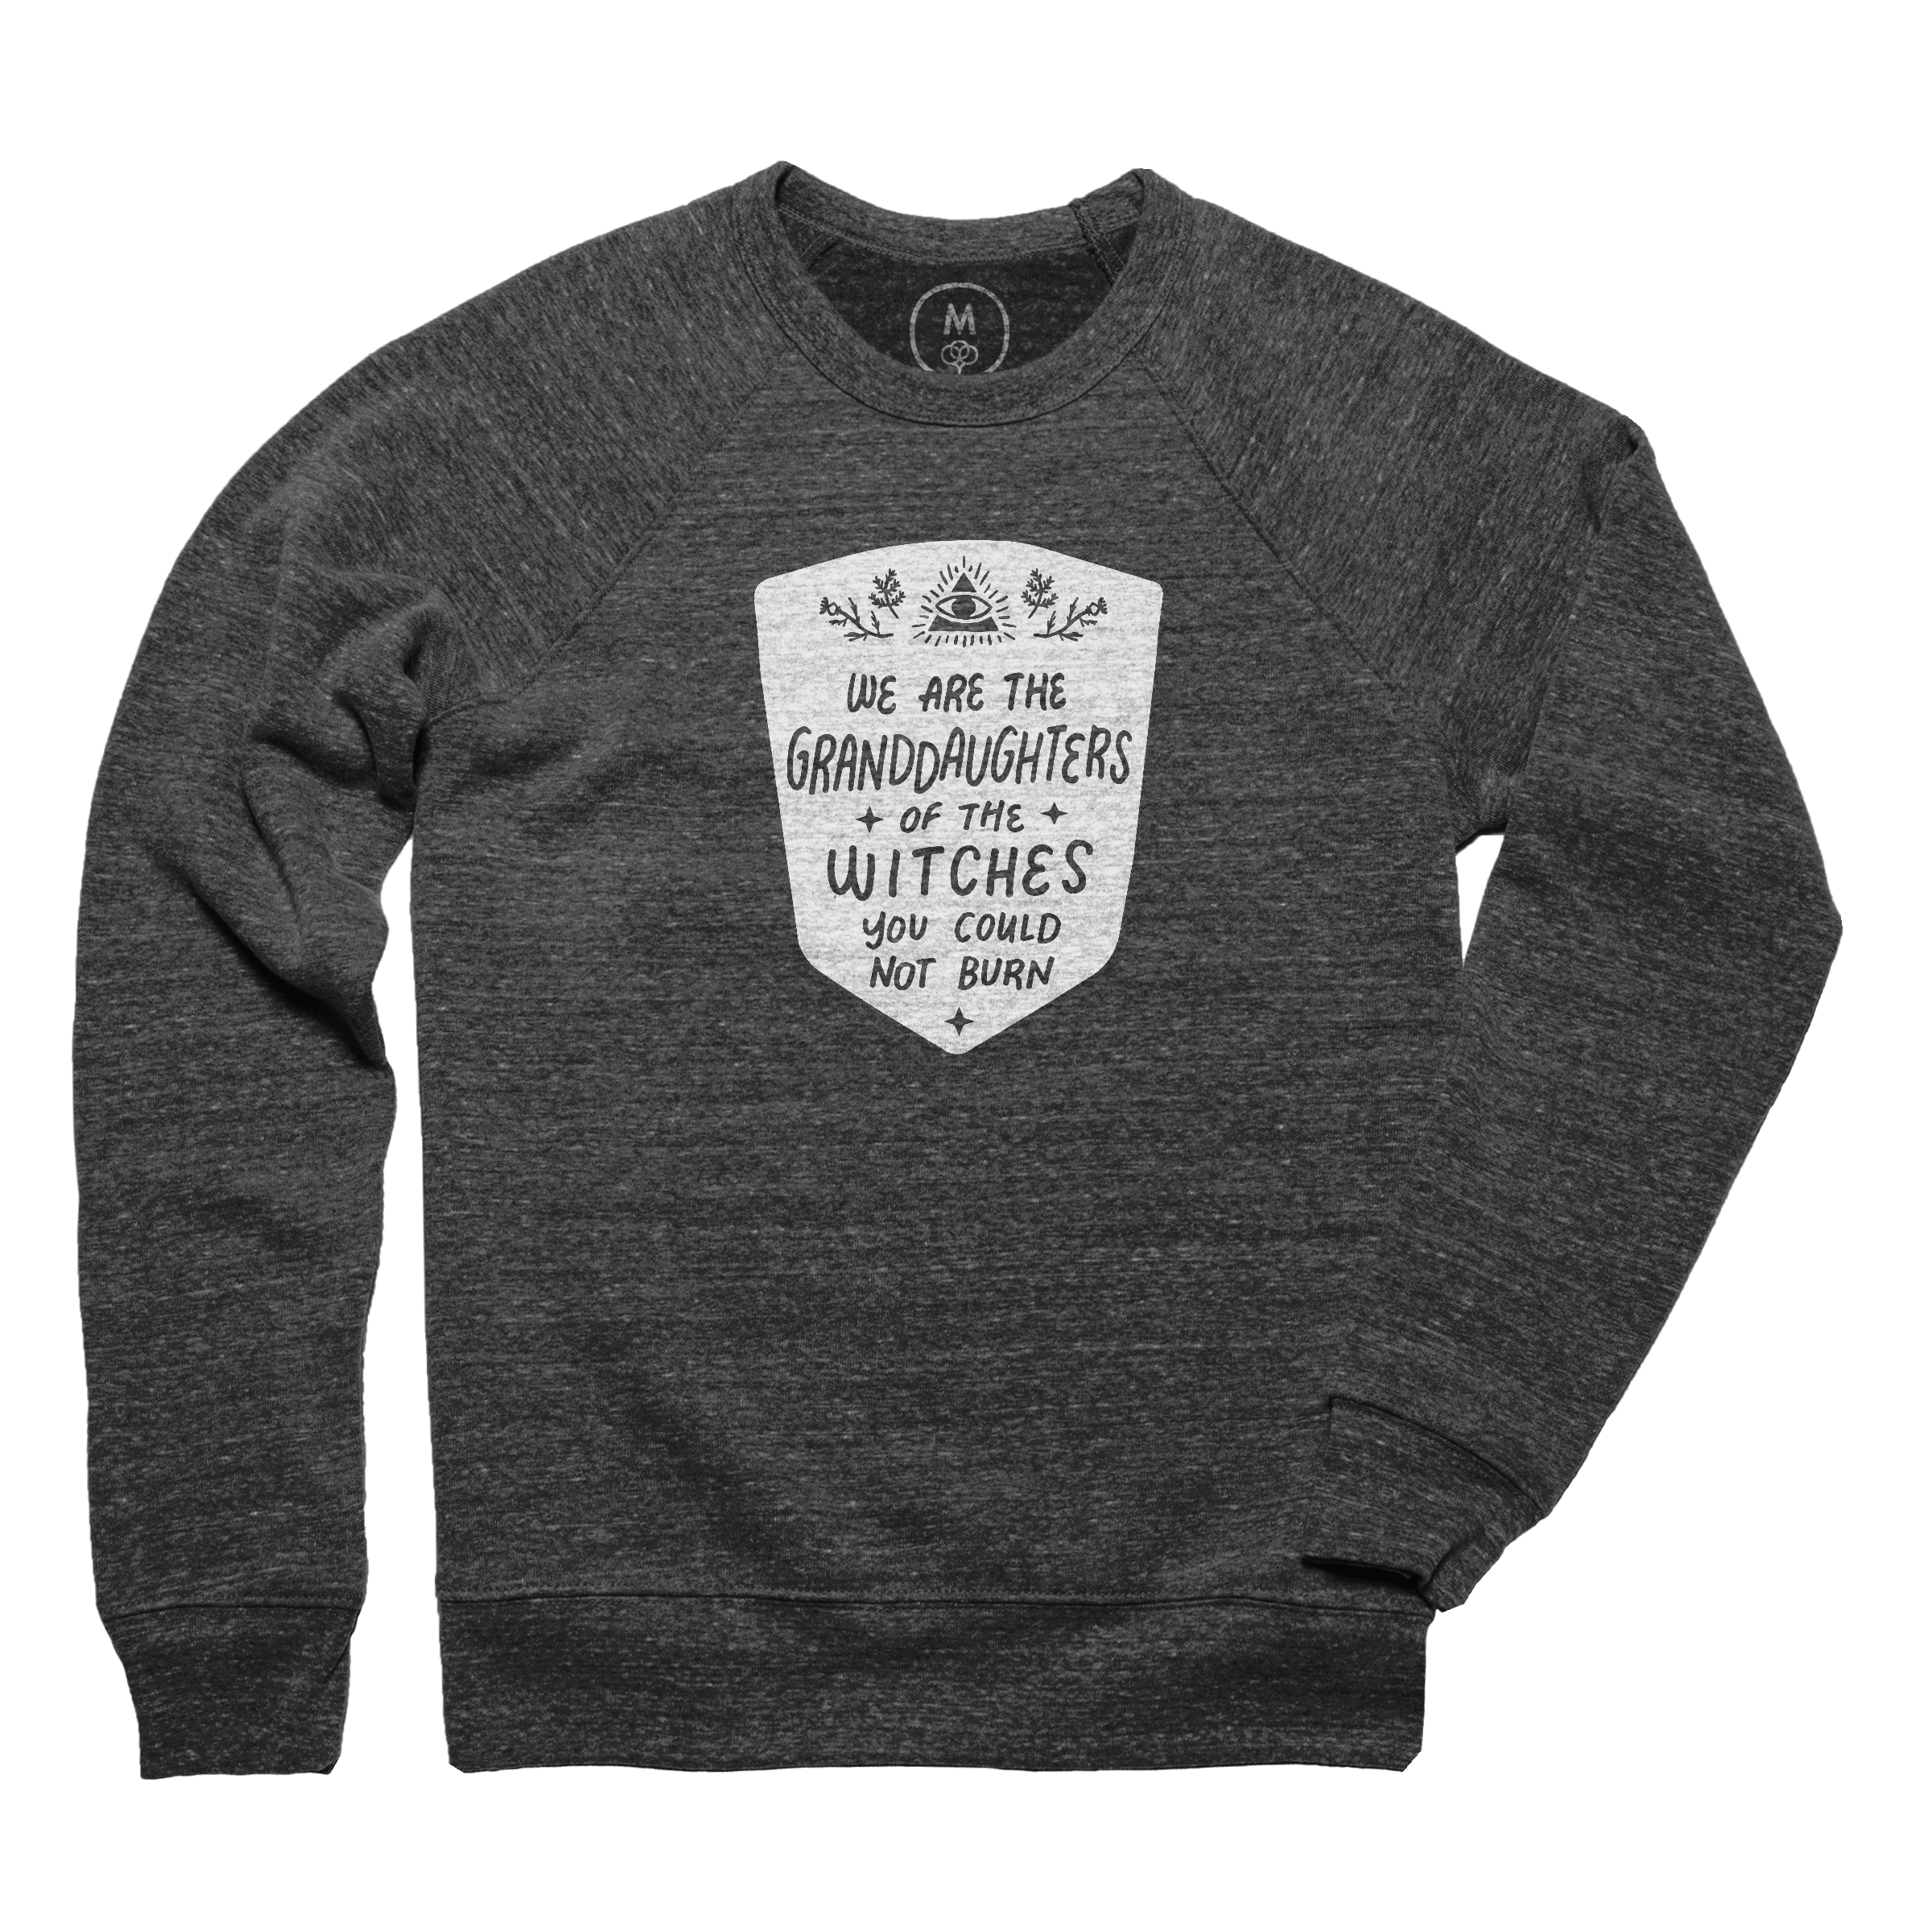 We Are The Granddaughters Pullover Crewneck